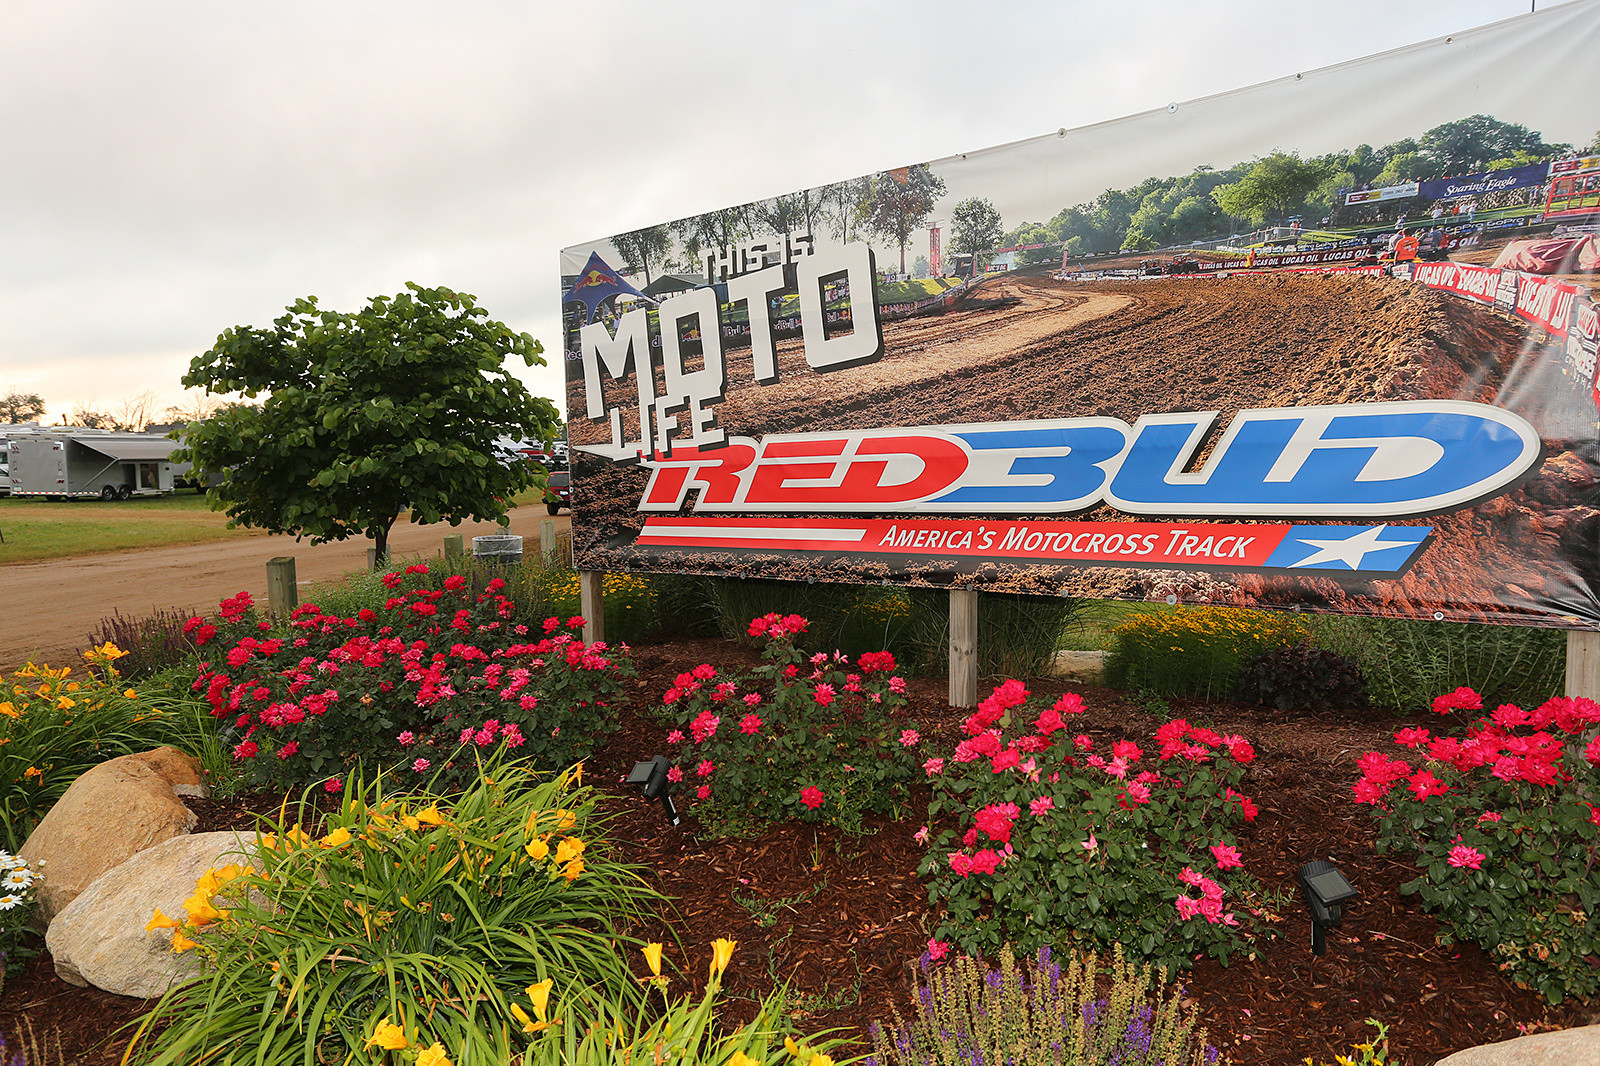 RedBud has something for everyone. You want to race on the main track? Yep, that's possible. Night races? They've got those, too. There's family-friendly stuff (it's almost a fair-like atmosphere by the night track). There are also regular campers, and Lot B for the heavy-duty party crowd.